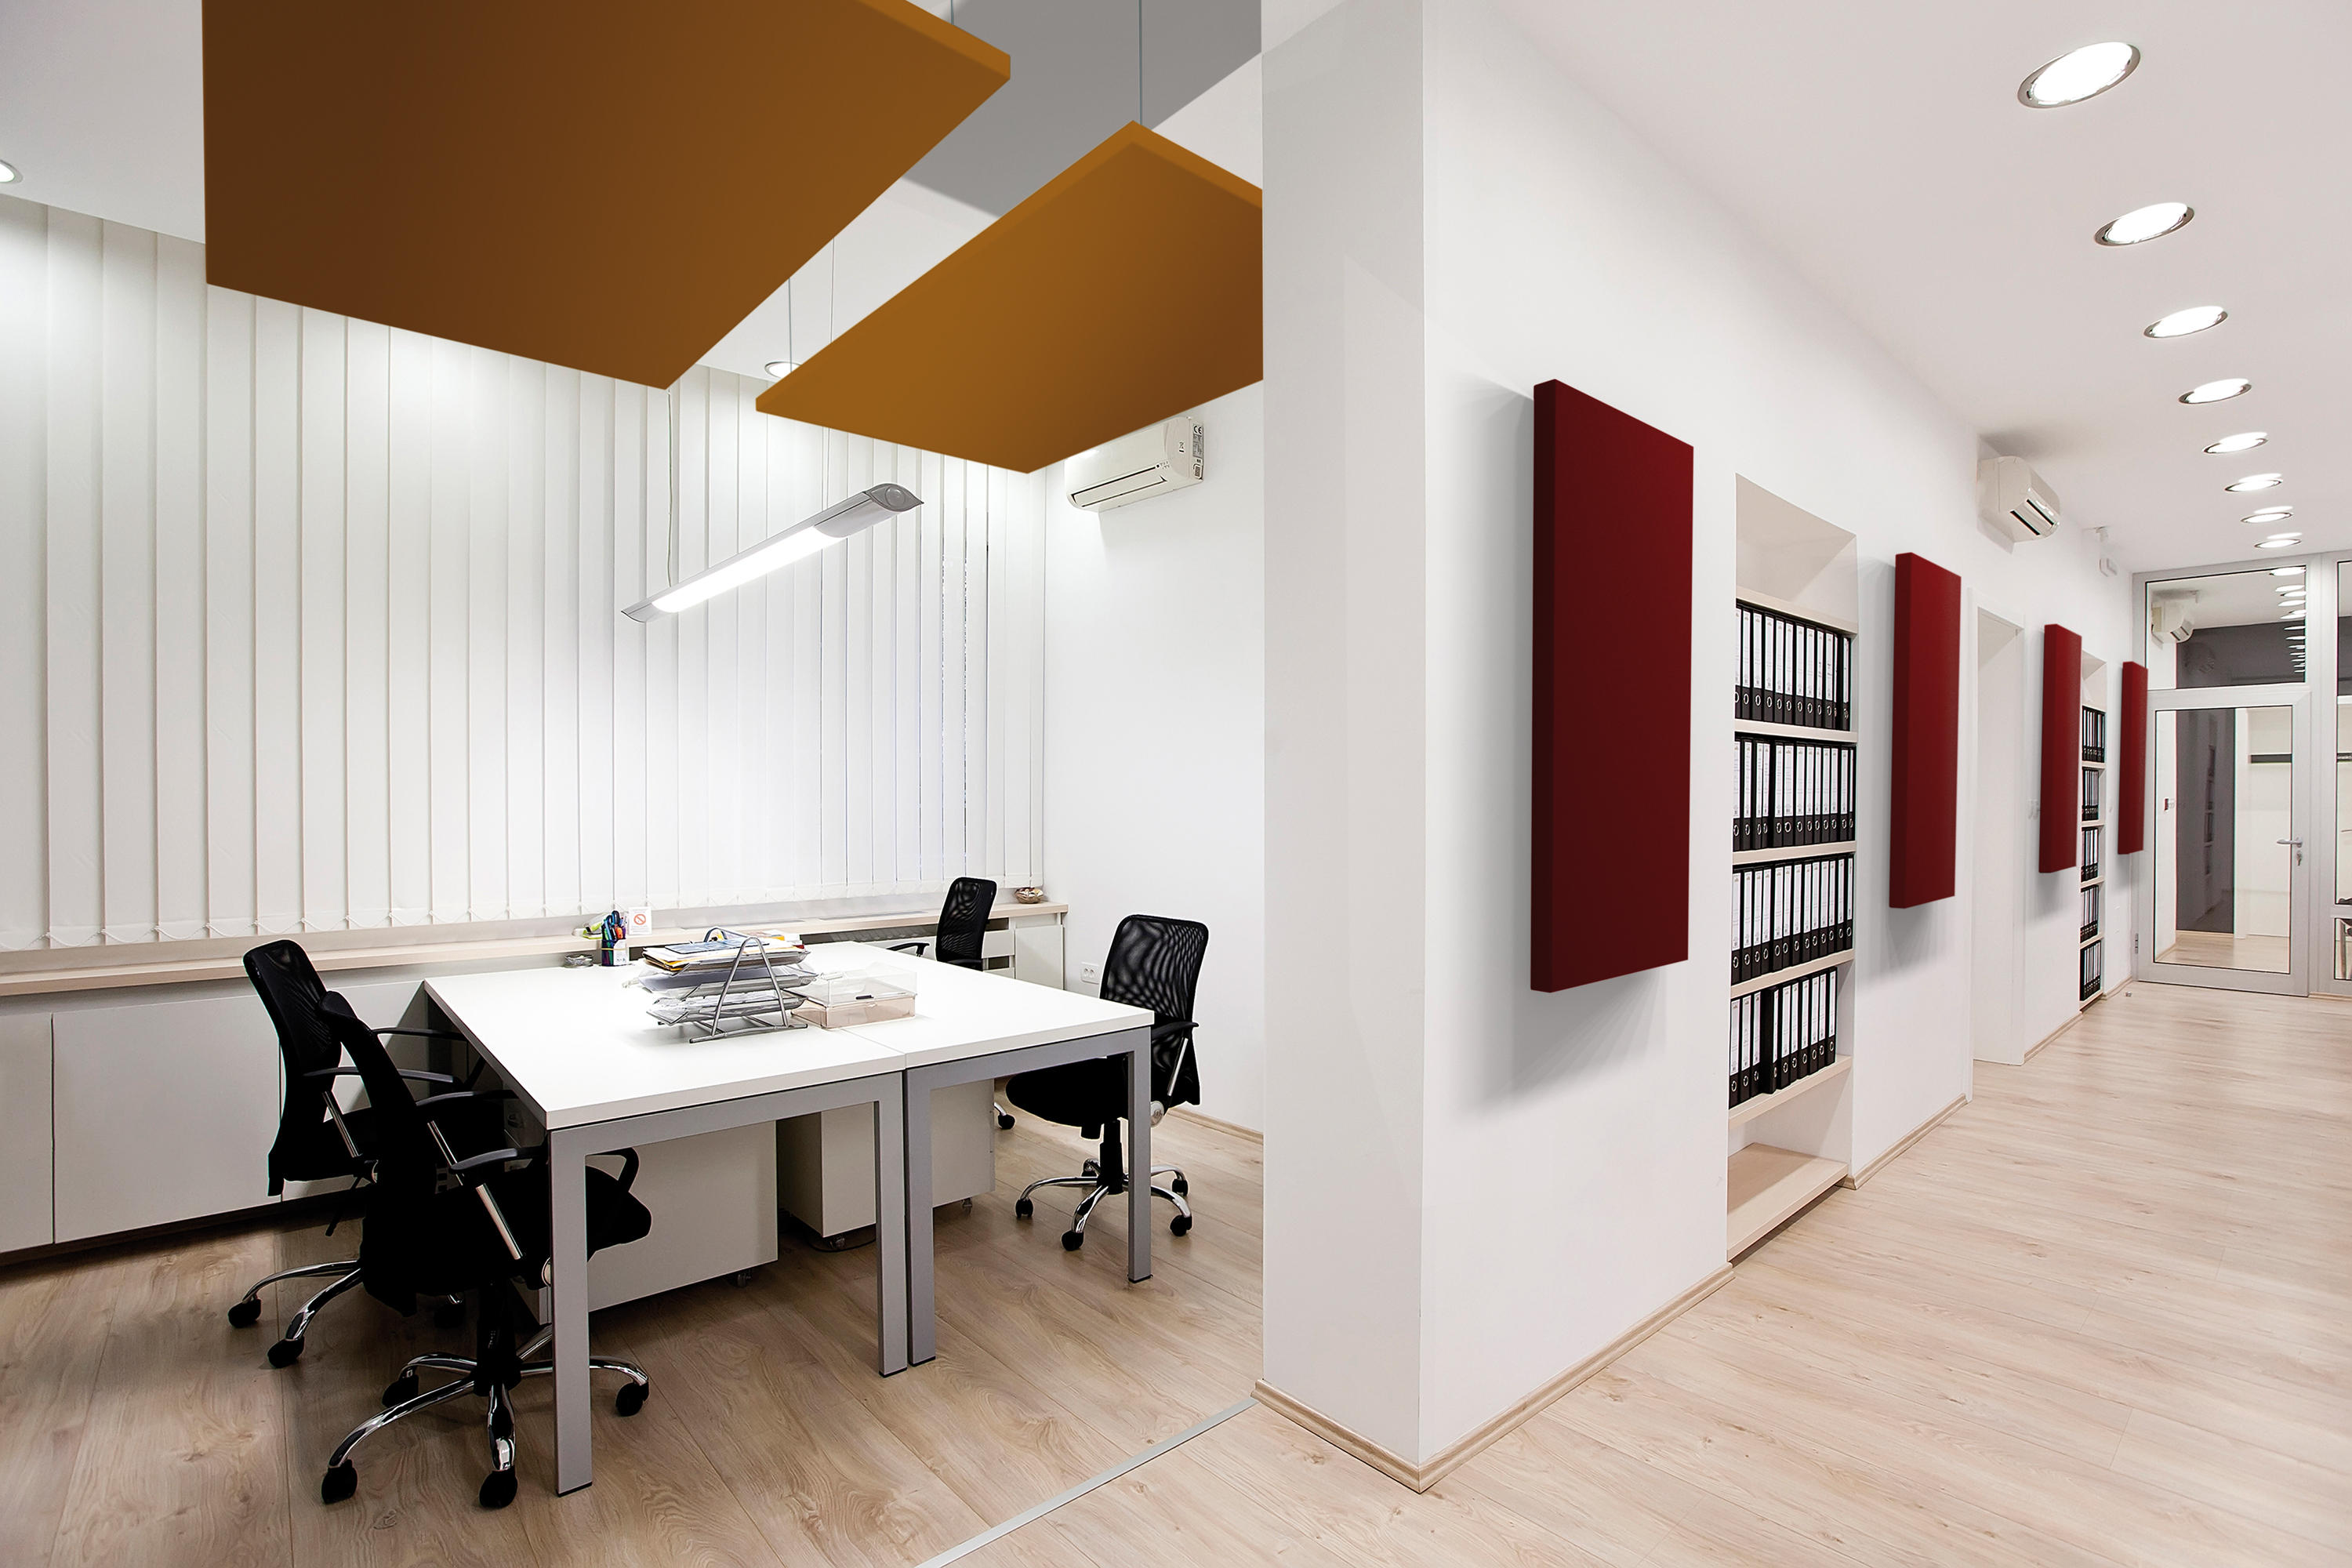 HANGING SILENTE - Suspended ceilings from Caruso Acoustic by Lamm ...